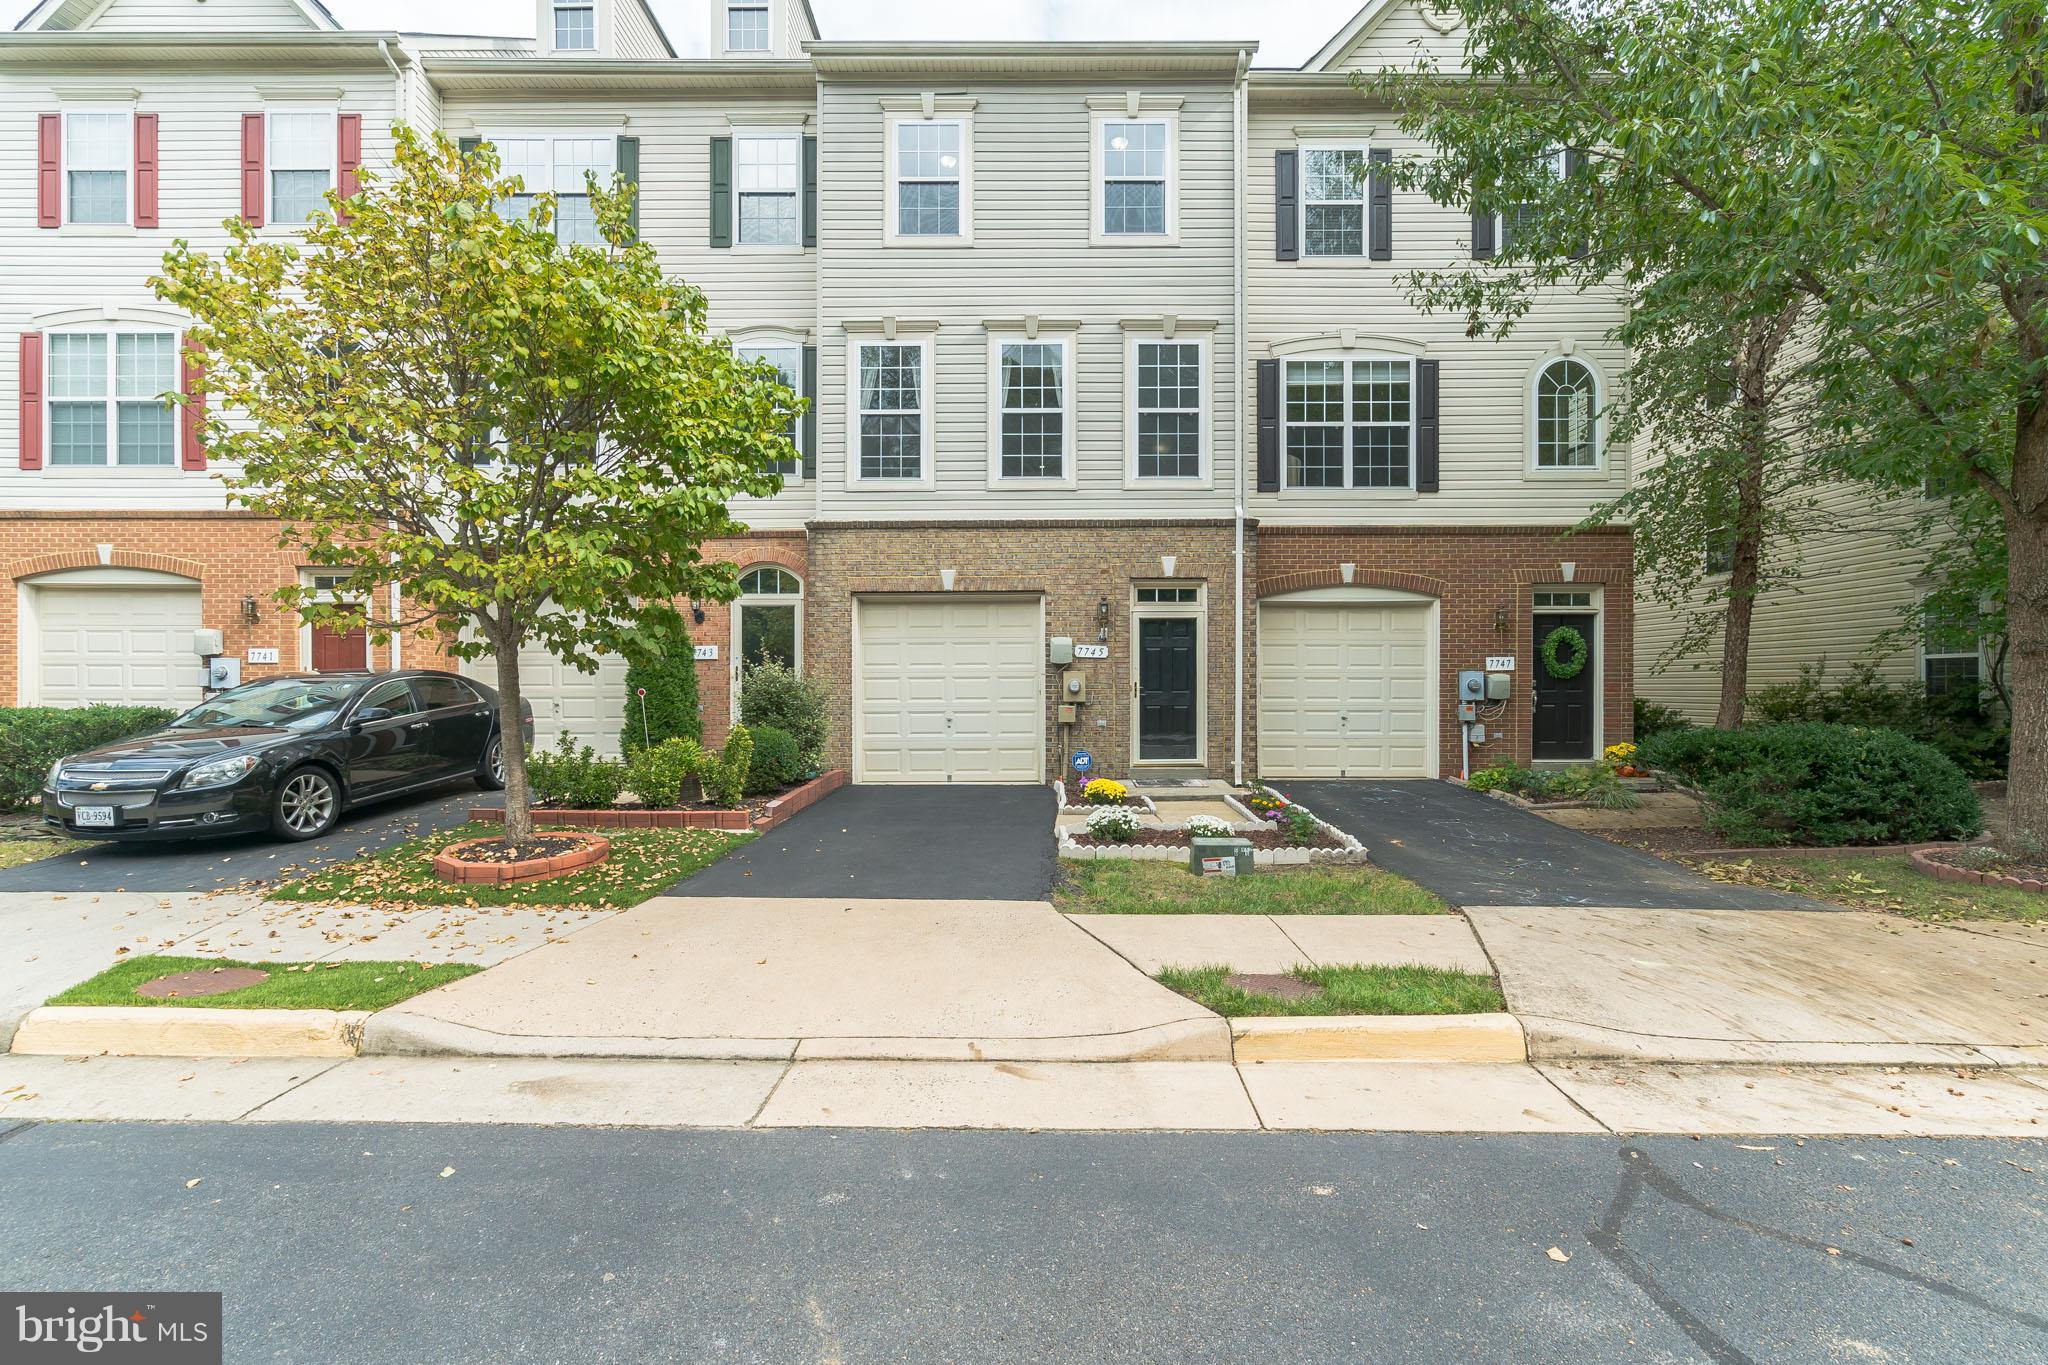 Located a stones throw from serene Huntley Meadows Park, this 3BR/3.5BA townhome is the perfect mix of modern & convenience. Gleaming hdwd flrs flow throughout the 2nd & 3rd lvls, updated kit w/ stainless steel appliances & granite counter tops. Master suite w/ spa like bath & ceramic tiling, 3rd Flr w/d. Deck looks out onto peaceful scenery. Walk to shopping. Metro within 3 miles.